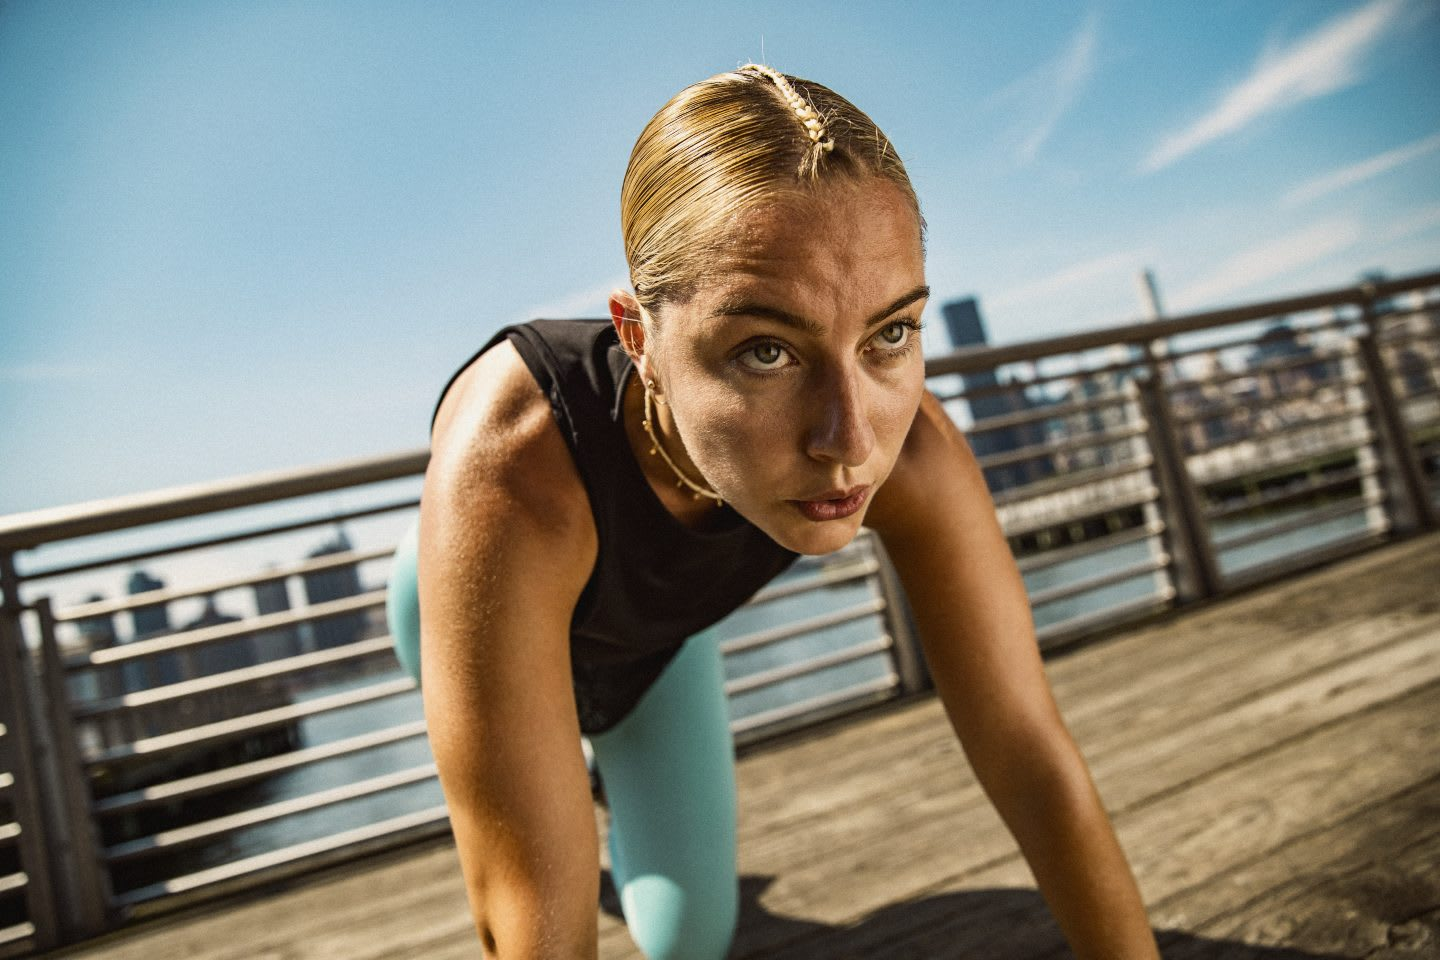 Woman looking focused and determined while doing sports on a boardwalk near a city, skyline, active, sport, lifestyle, mindset, adidas, female, athlete